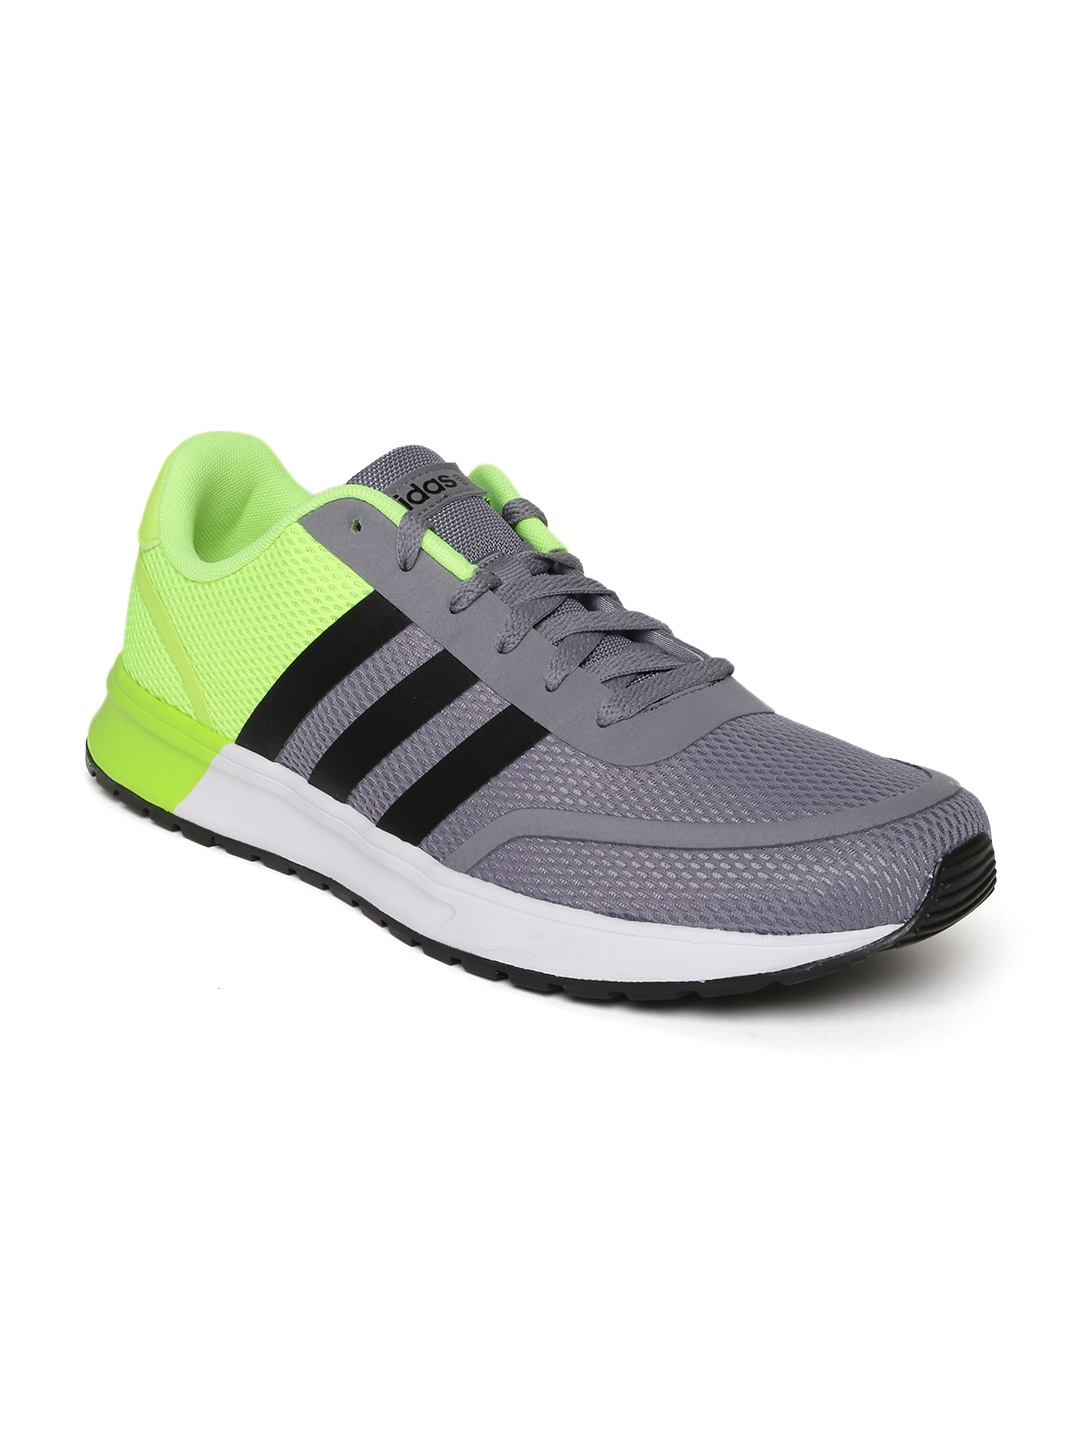 usa adidas neo skate green grey 54a73 9c842